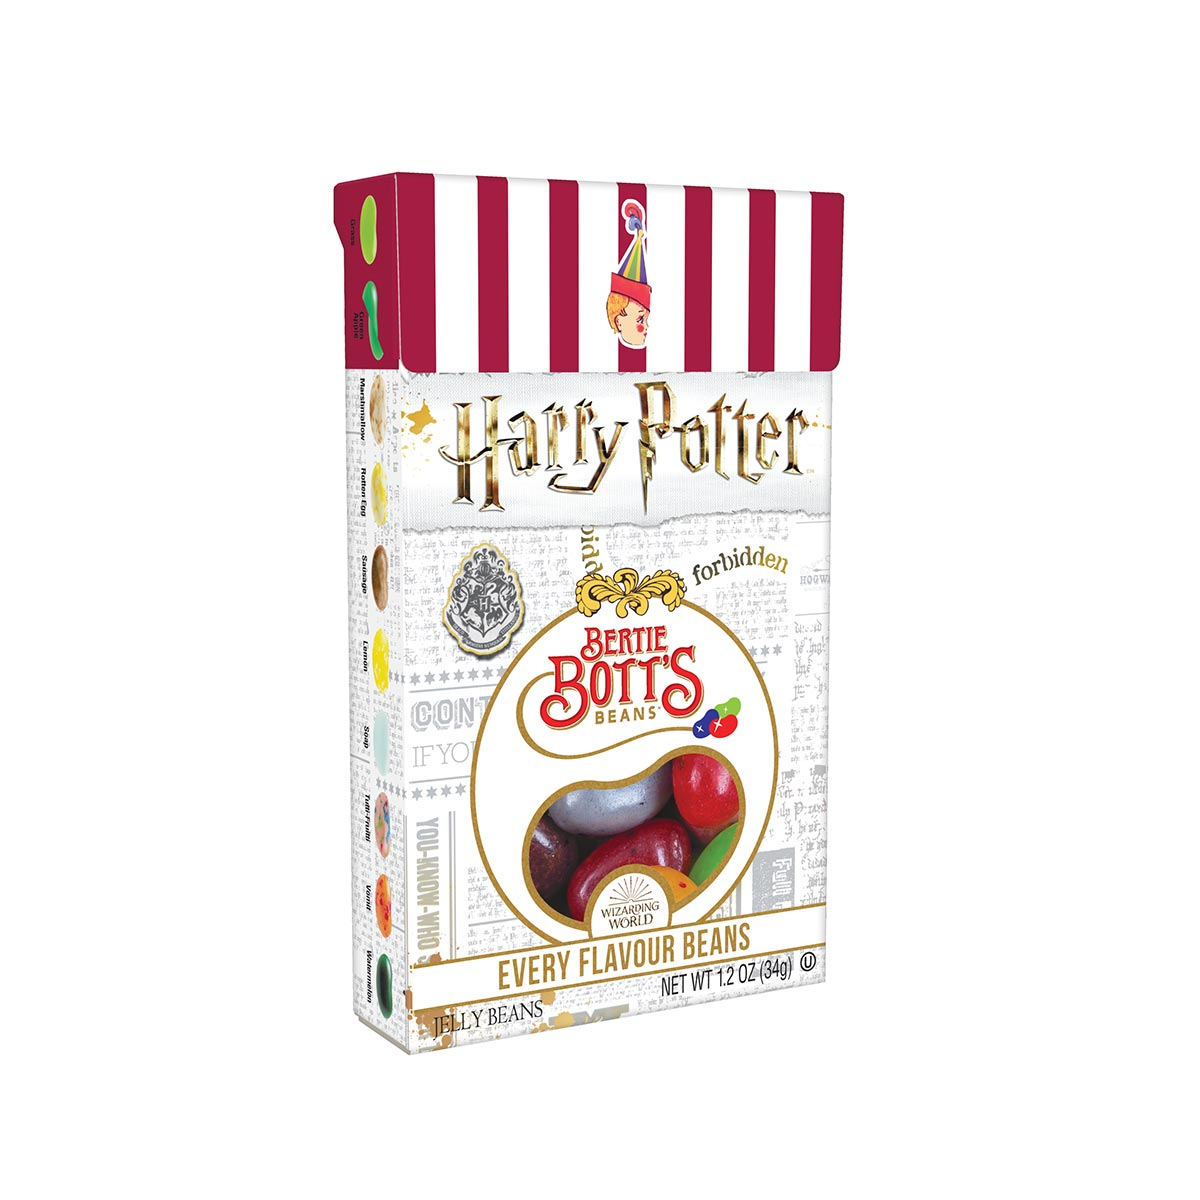 Harry Potter™ Bertie Bott's Every Flavour Beans – 1.2 oz Box